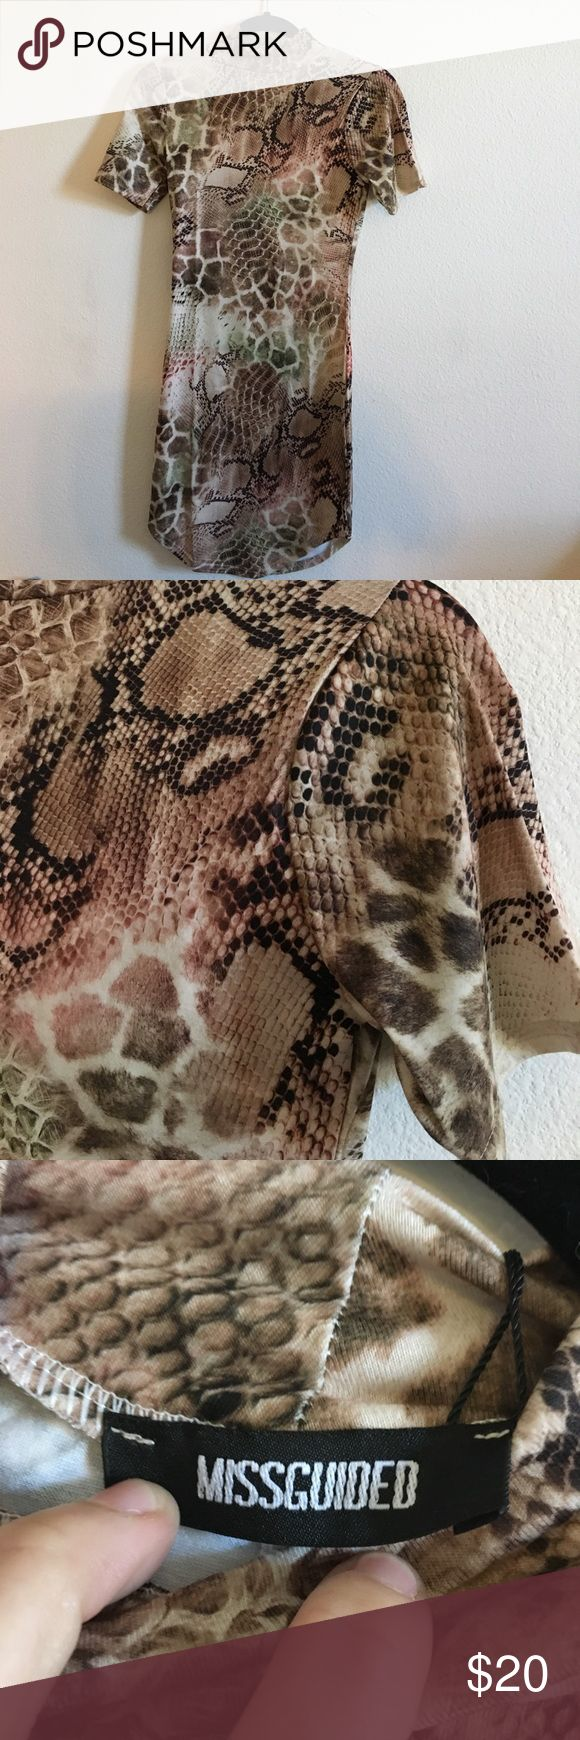 "Snake print dress Brand is Missguided, size 4 US. High low design with a turtleneck and short sleeves. Stretch fit. 31"" in length Missguided Dresses Asymmetrical"